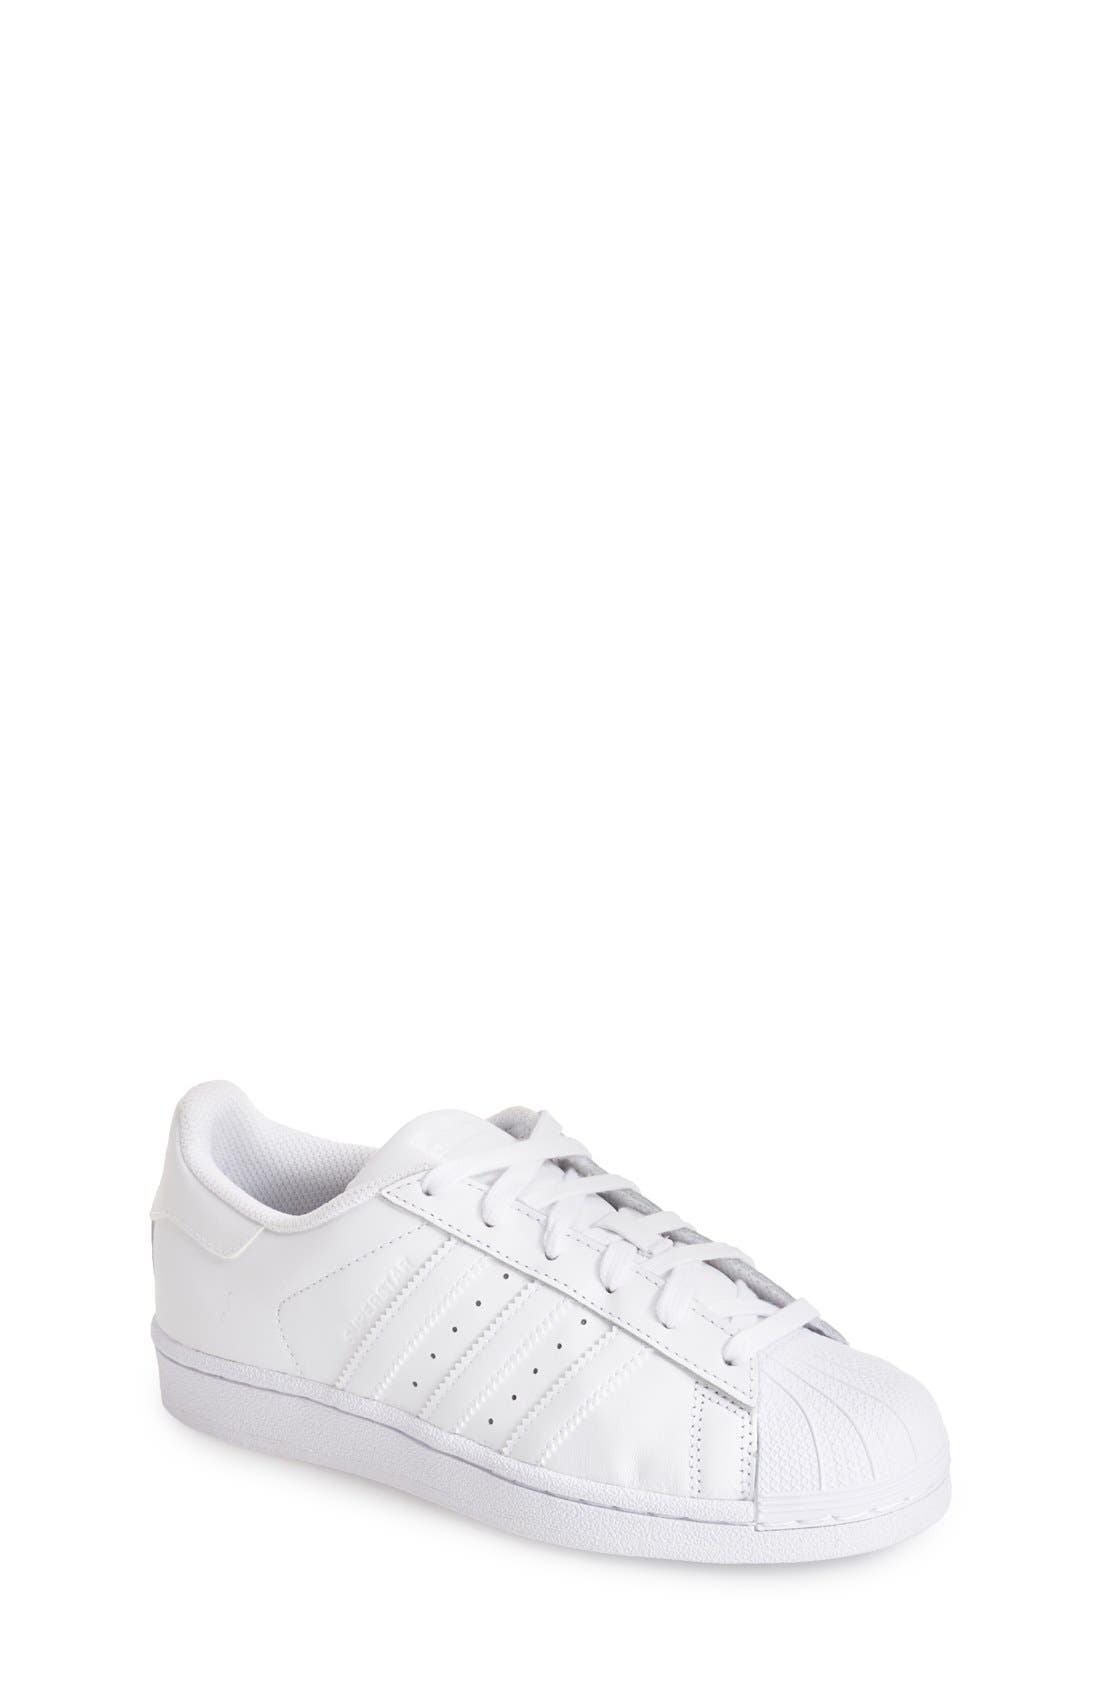 Buy adidas superstar 2 kids white   OFF72% Discounted f6251b0dca5c3